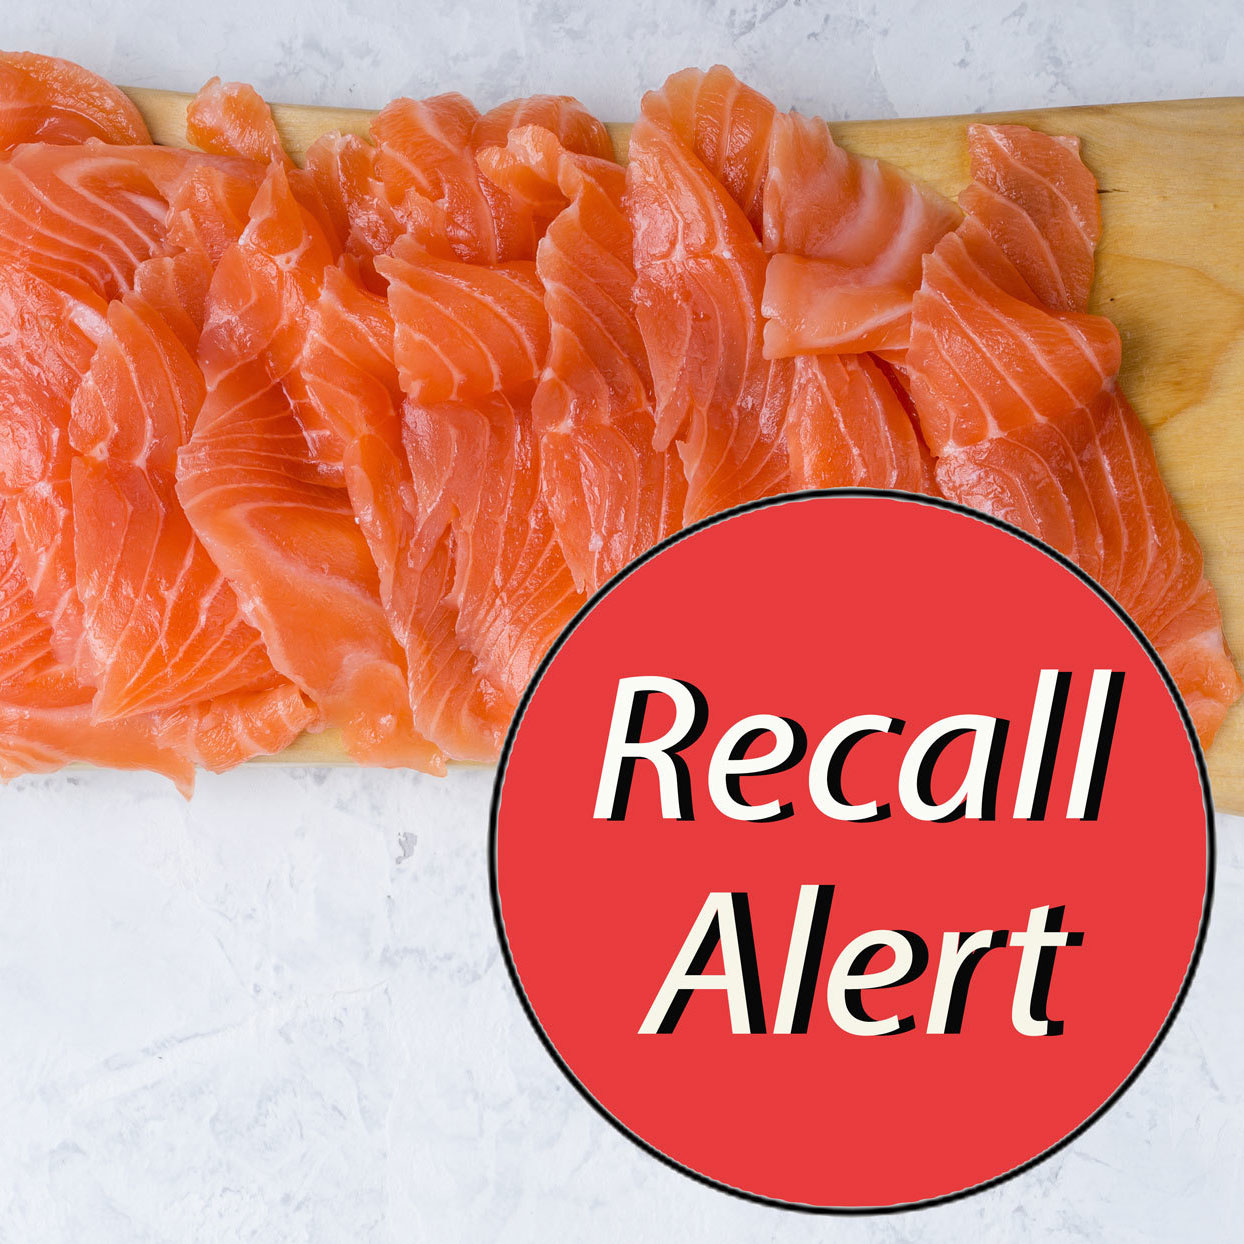 Smoked Salmon with a Recall Alert sticker